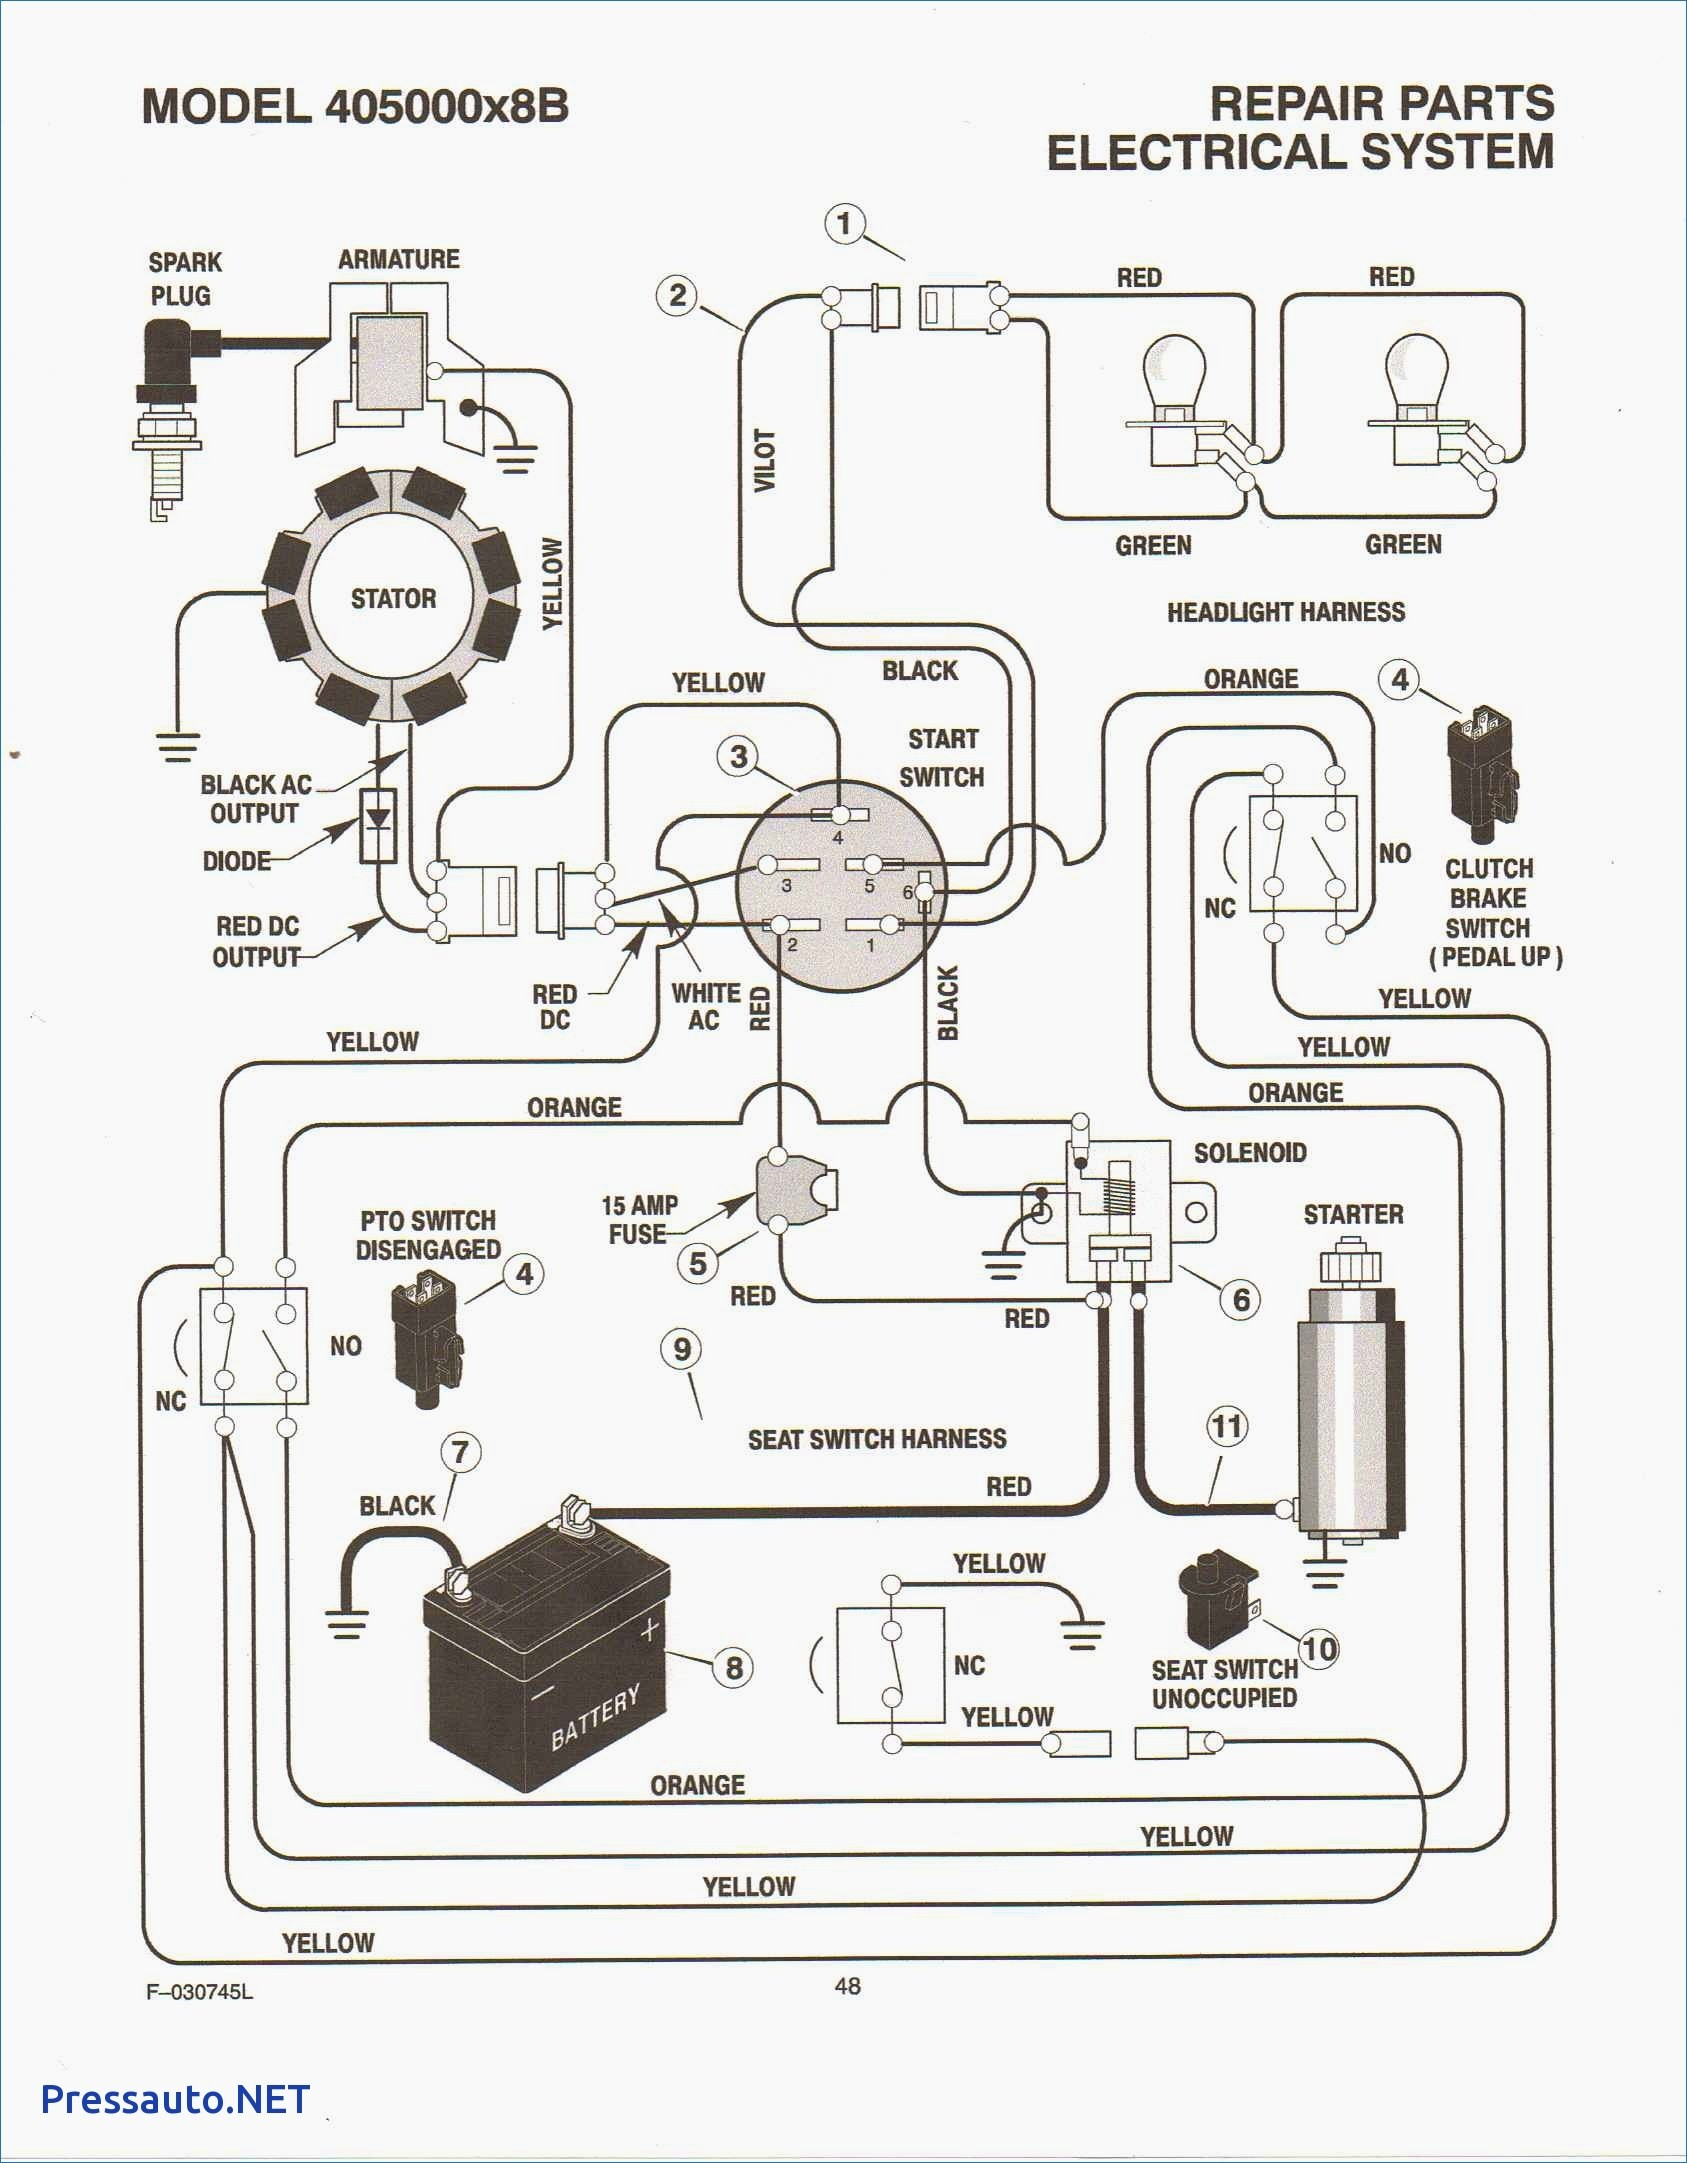 Kohler Engine Wiring Harness Diagram - Read All Wiring Diagram on